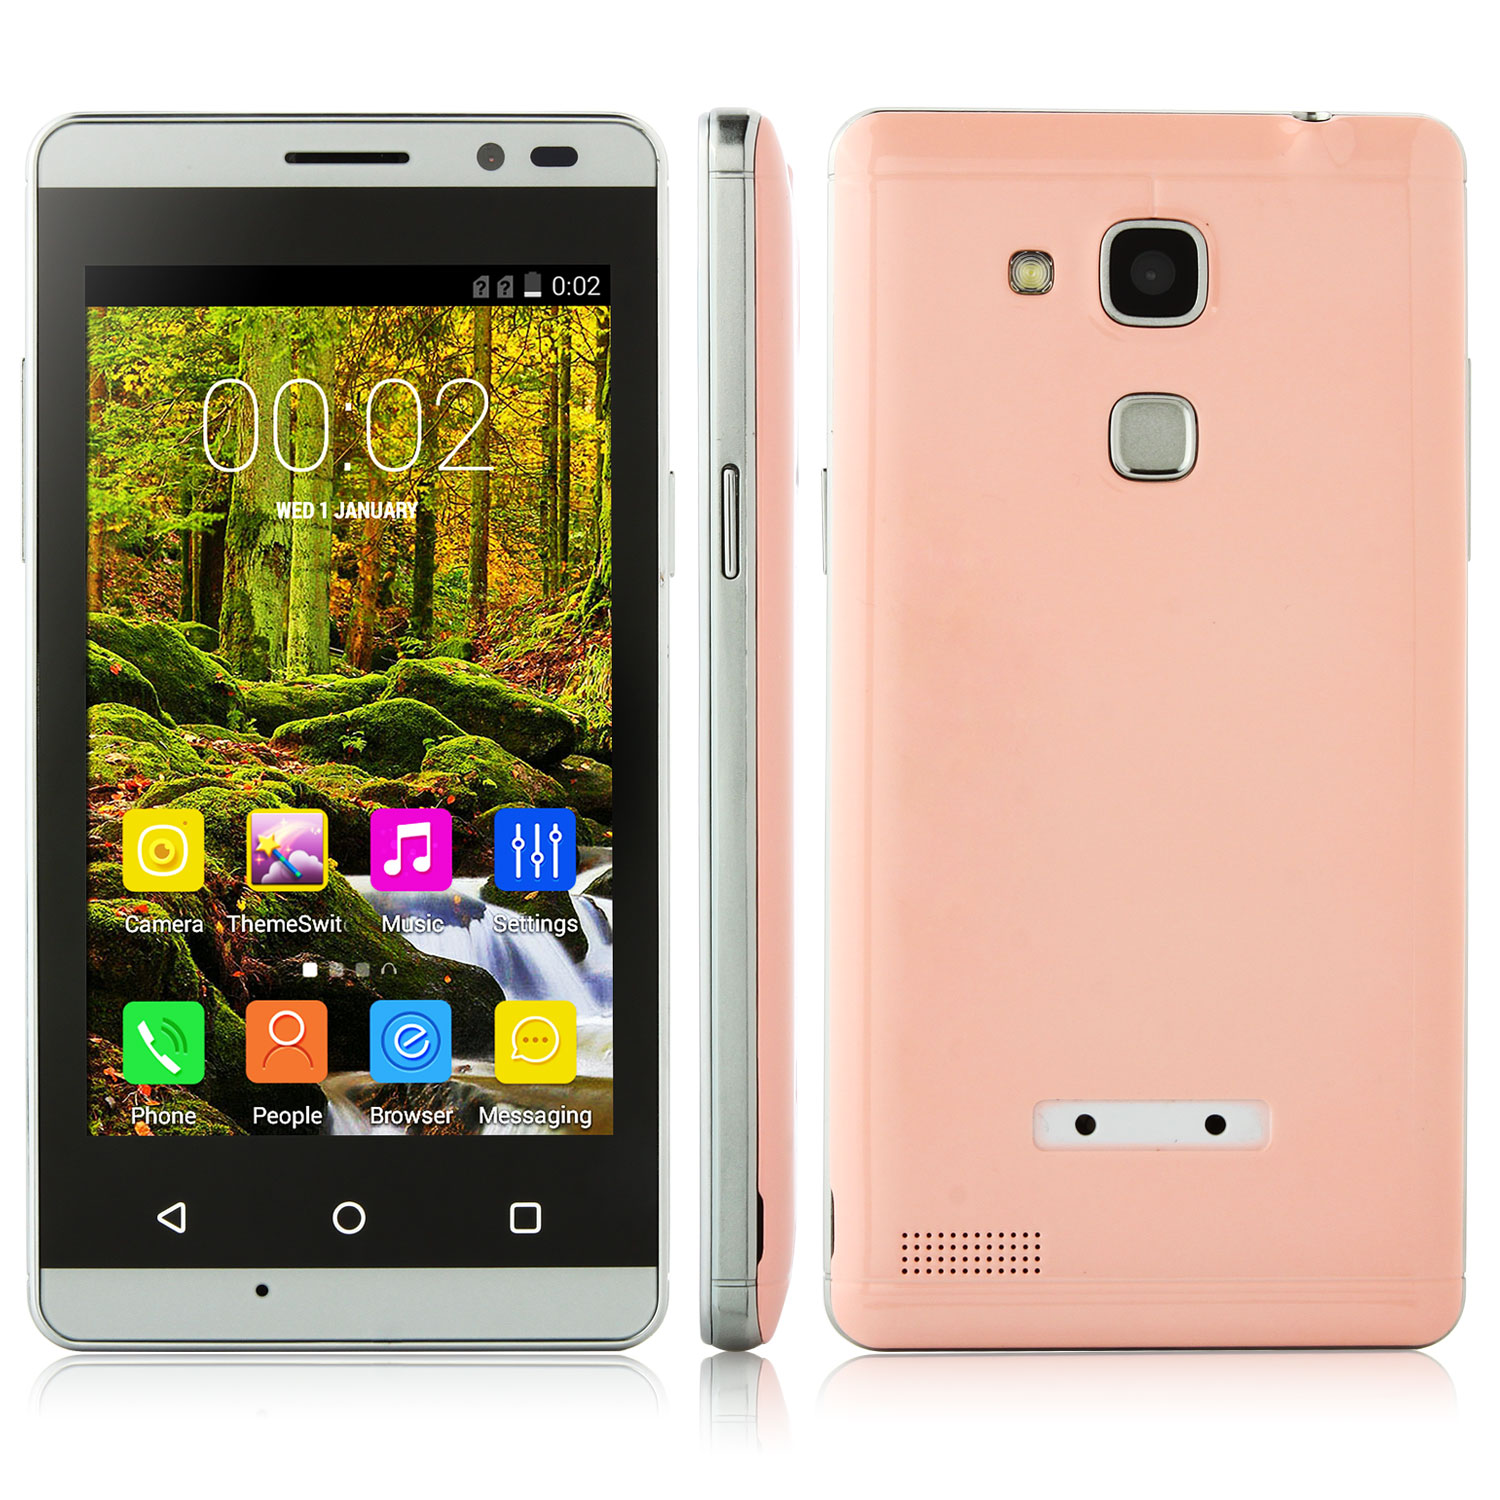 Tengda Q5 Smartphone Android 4.4 MTK6572W 4.0 Inch 3G Pink